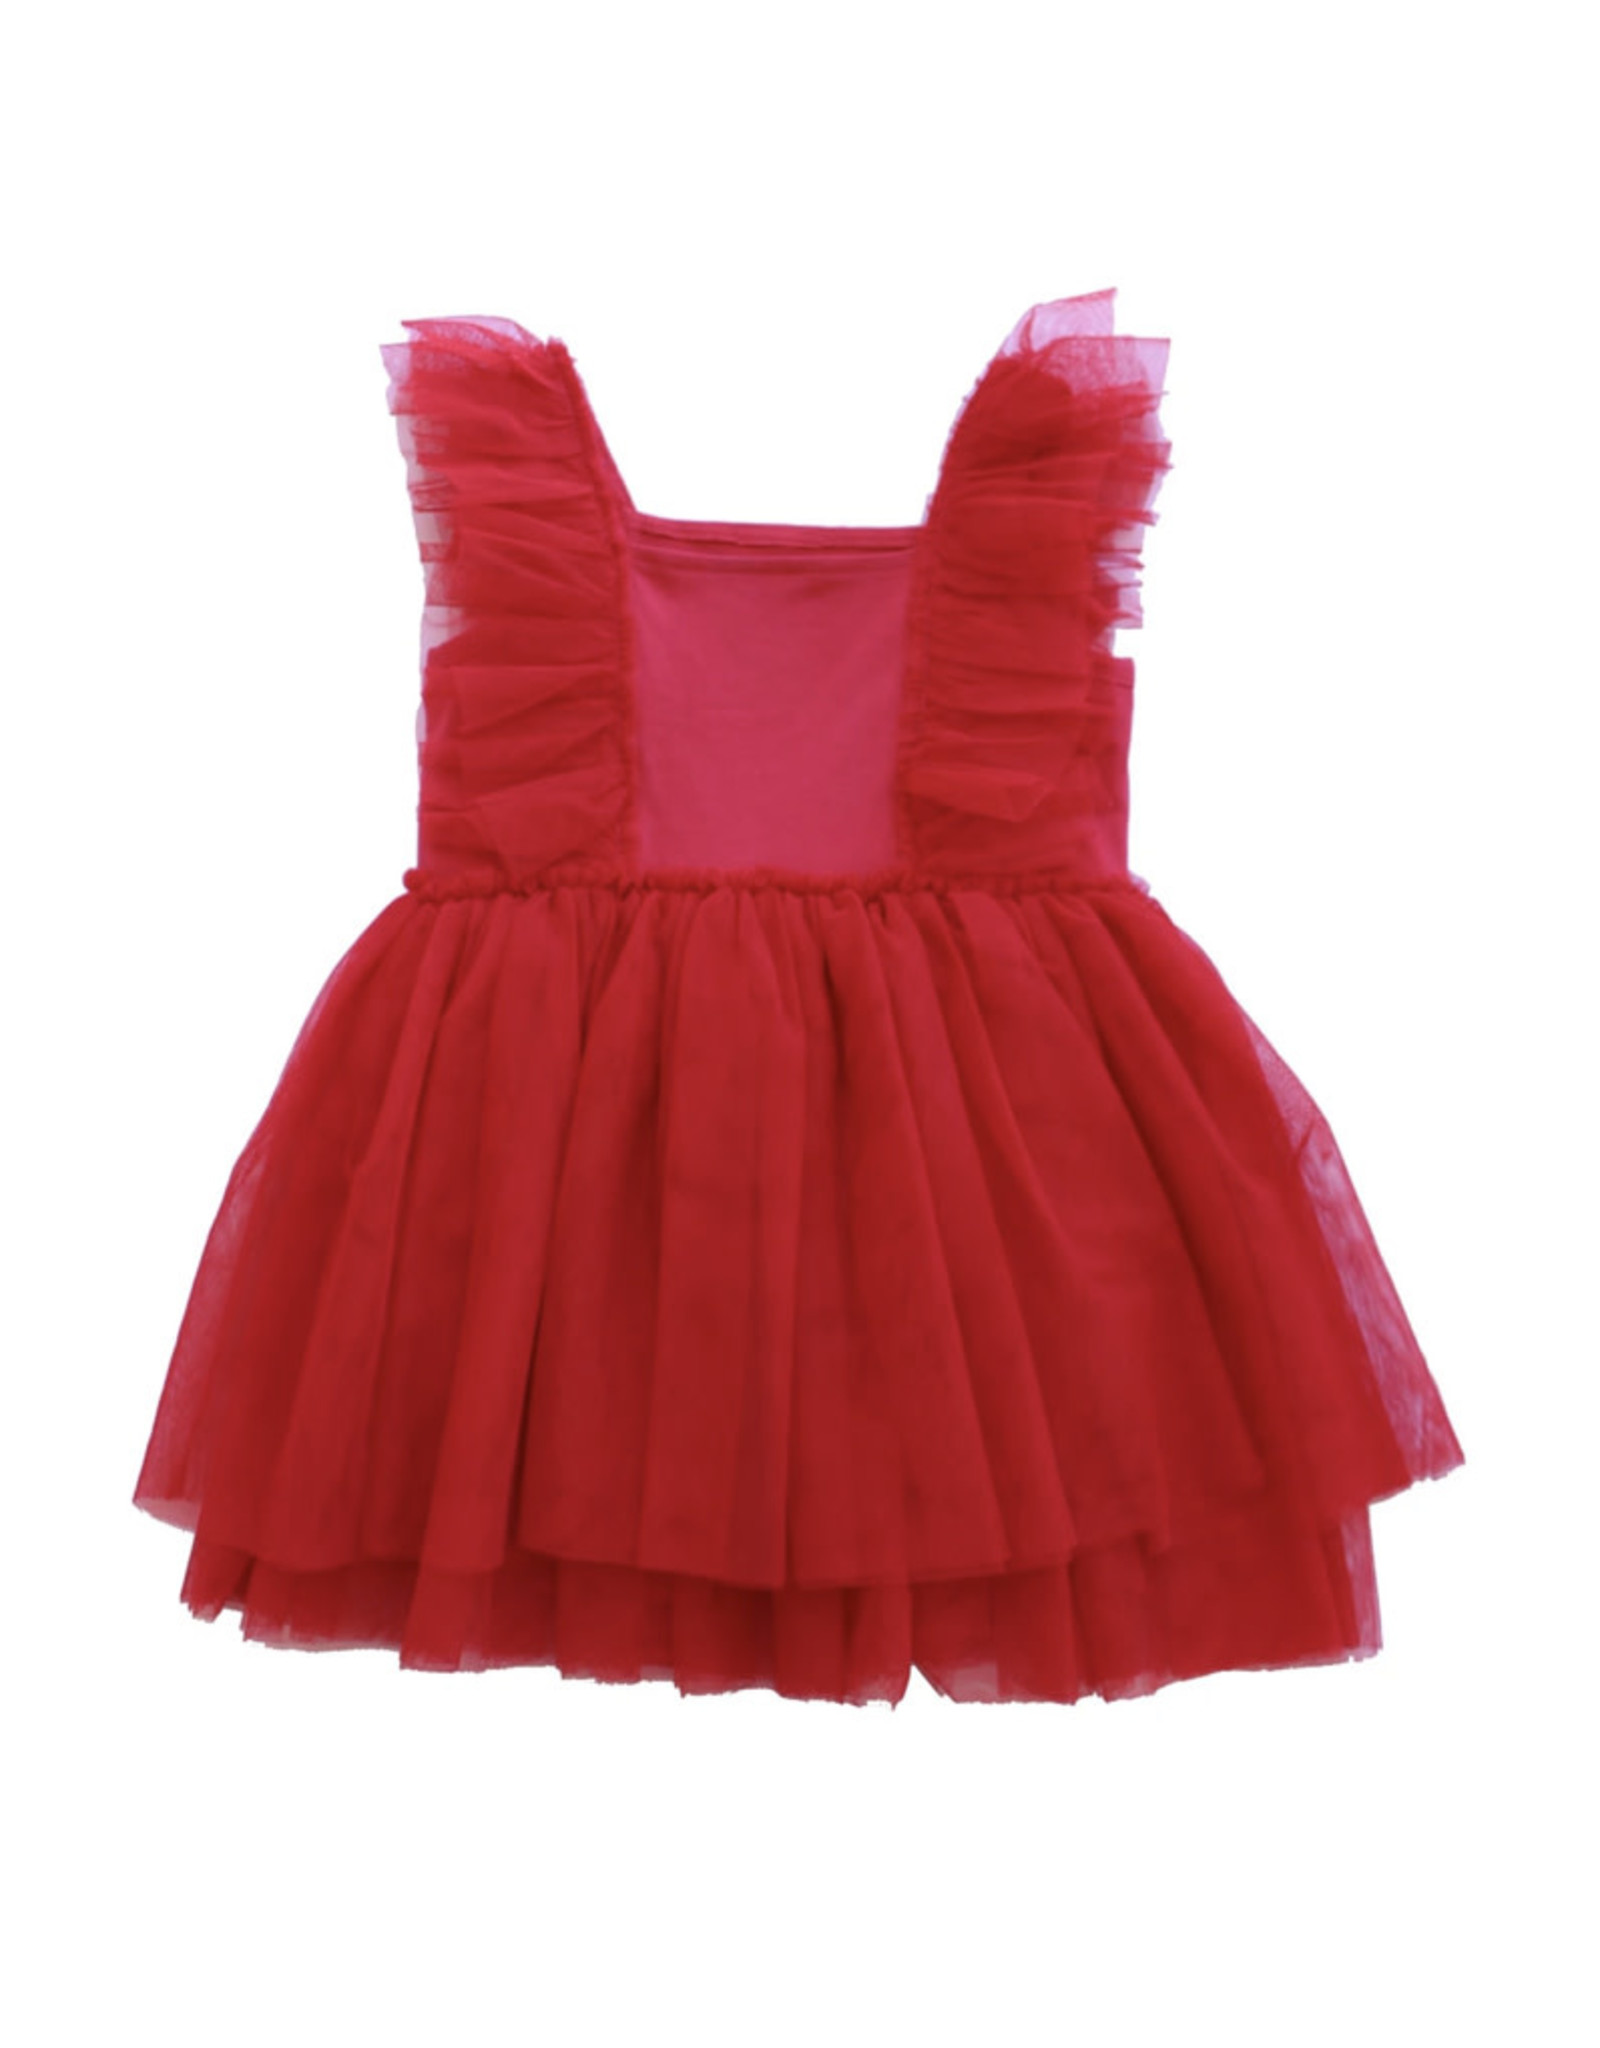 Born to Love- Red Tulle Dress